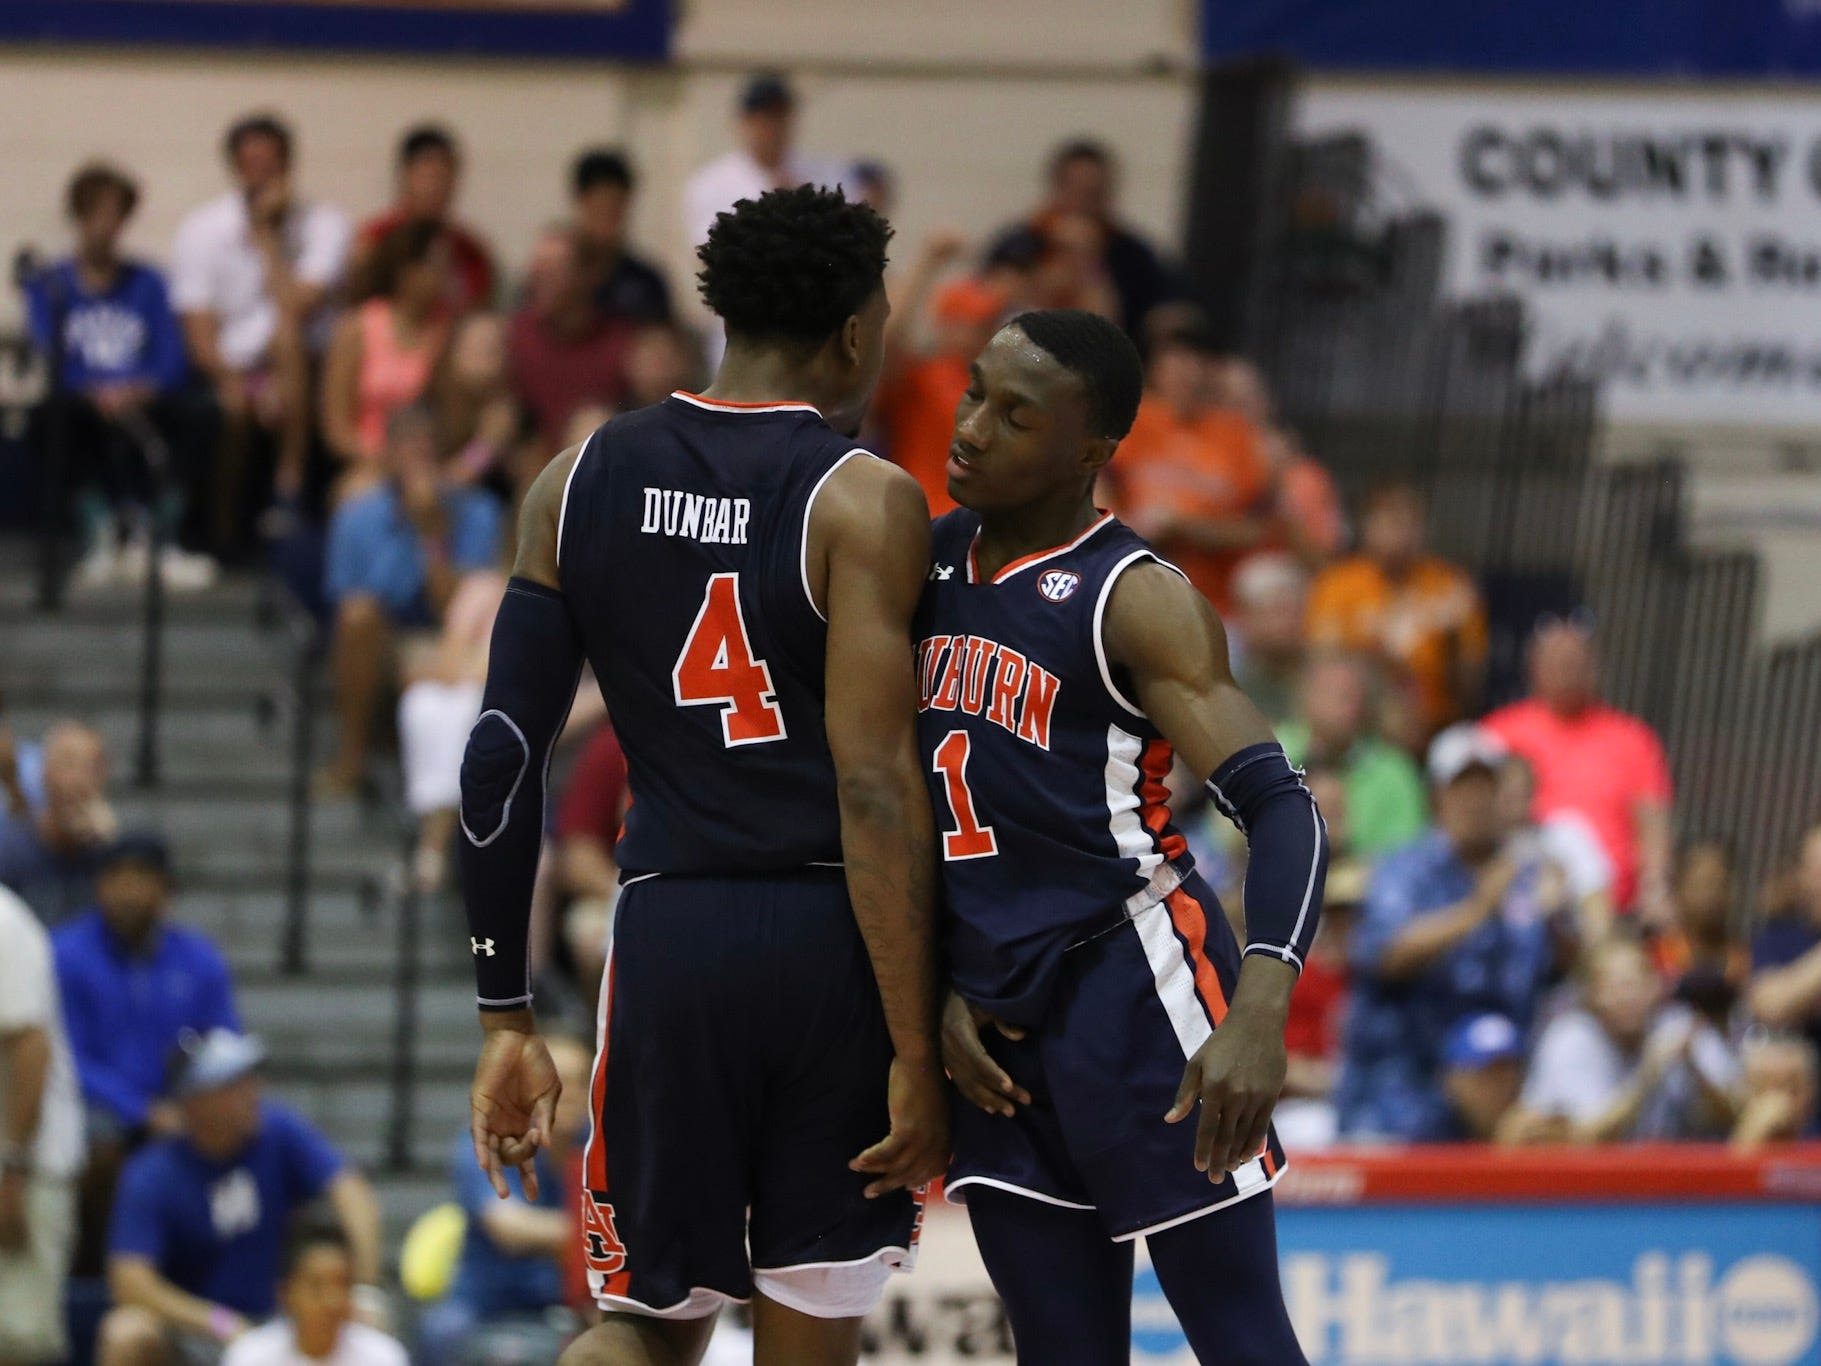 Auburn guard Jared Harper (1) celebrates with forward Malik Dunbar (4) during a game against Xavier in the Maui Invitational on Nov. 19, 2018.